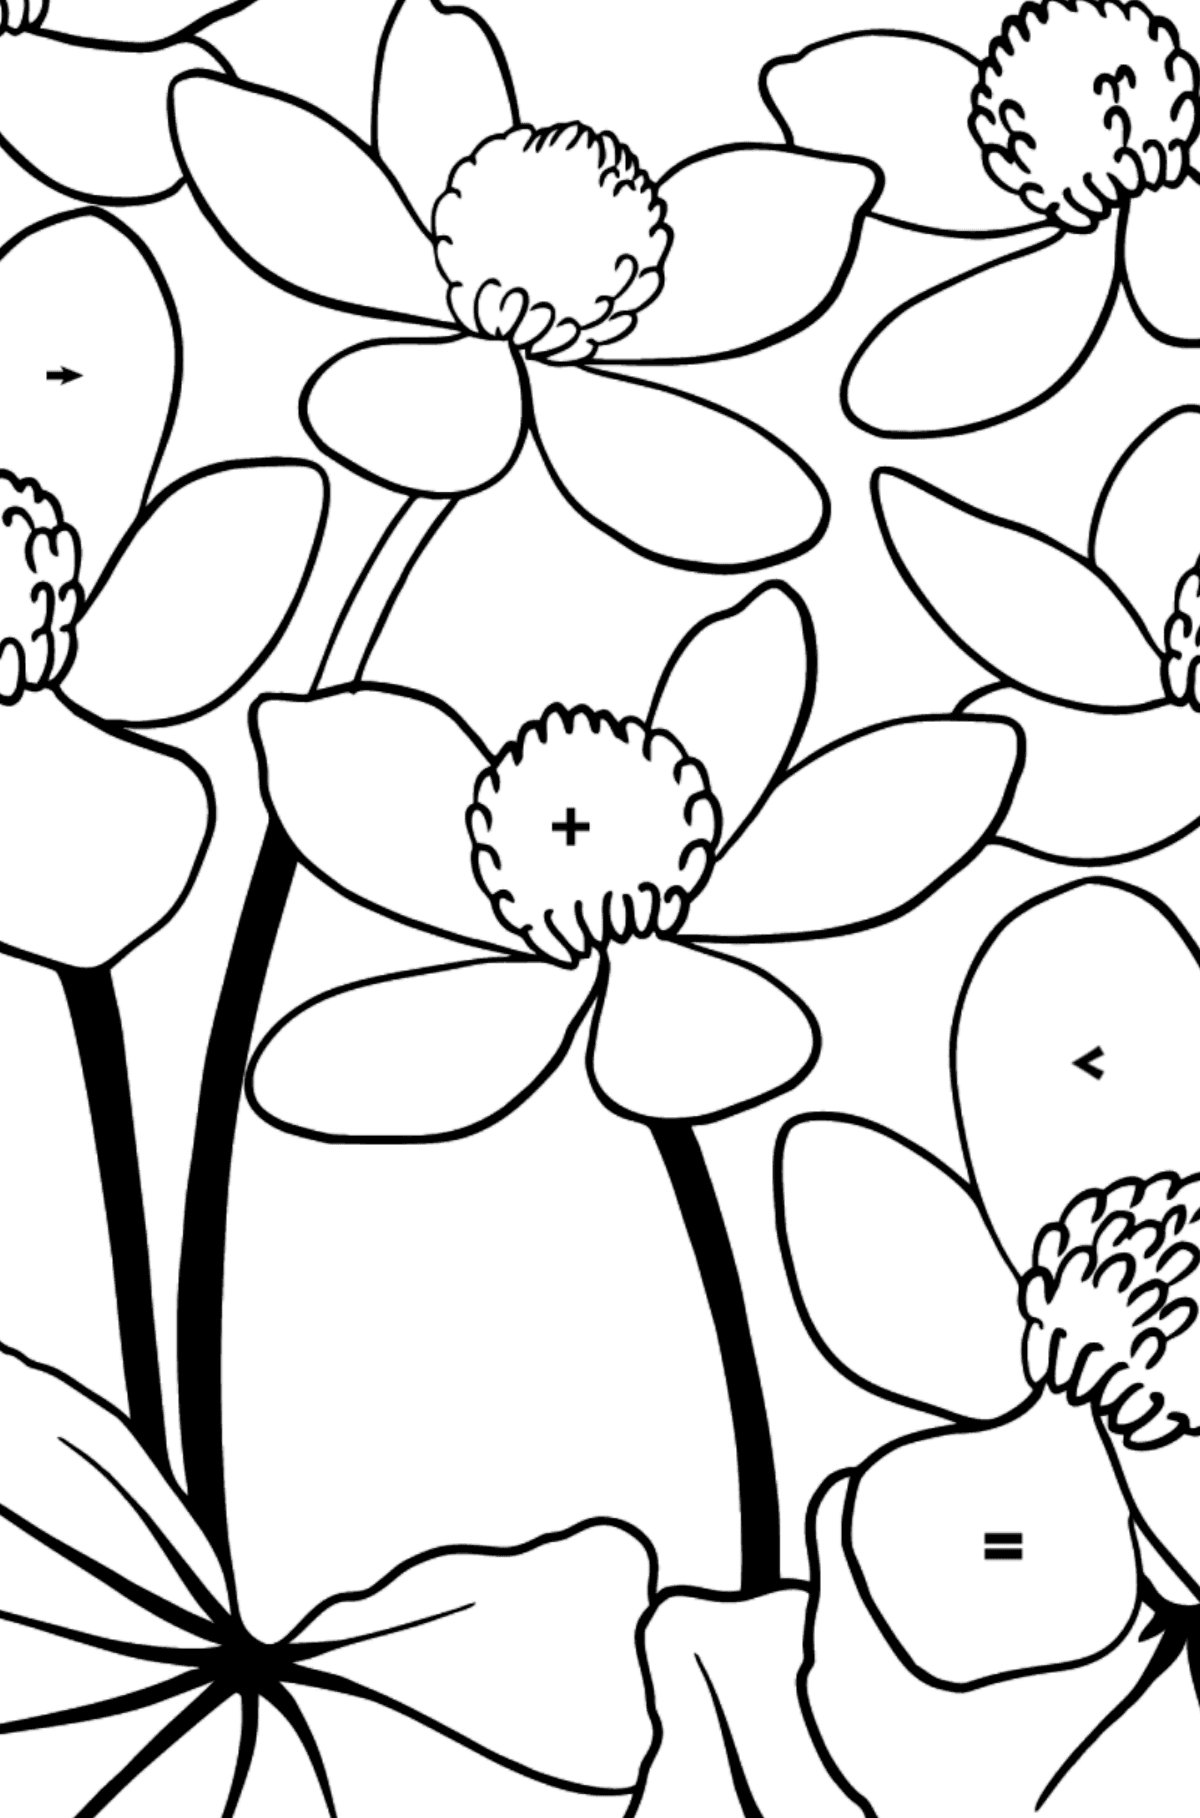 Flower Coloring Page - A Yellow and Red Marsh Marigold - Coloring by Symbols for Kids